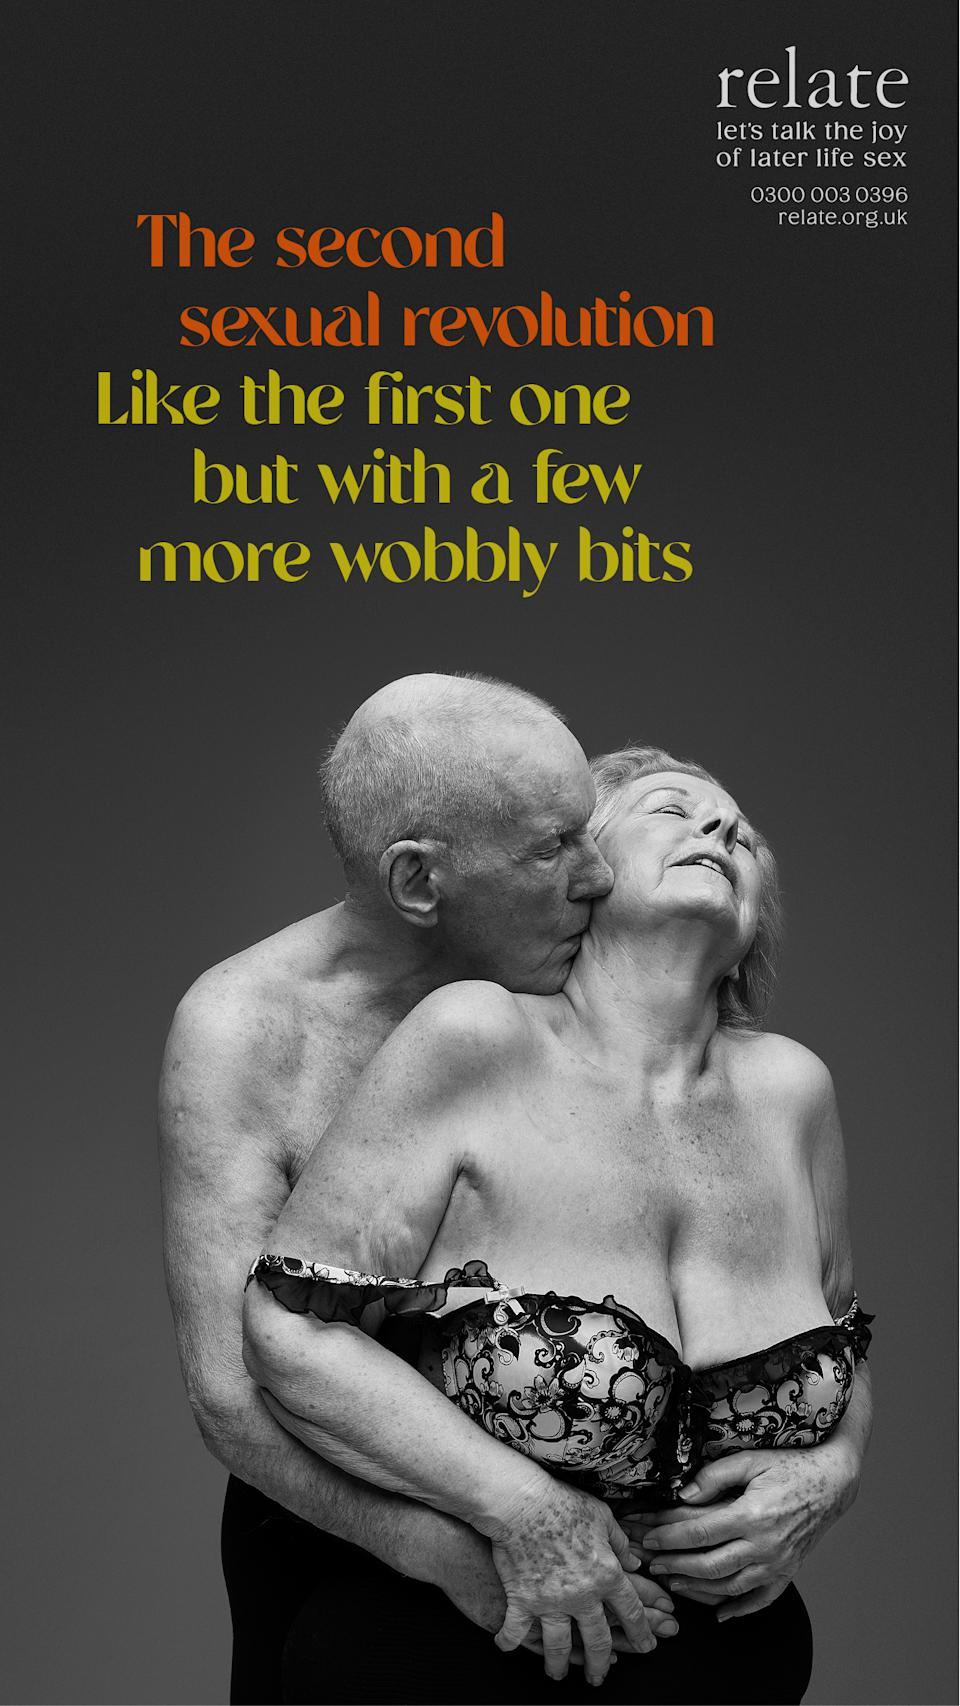 The 'Let's talk the joy of later life sex' campaign aims to break down the taboo surrounding intimacy in your later years. (Rankin/Relate)